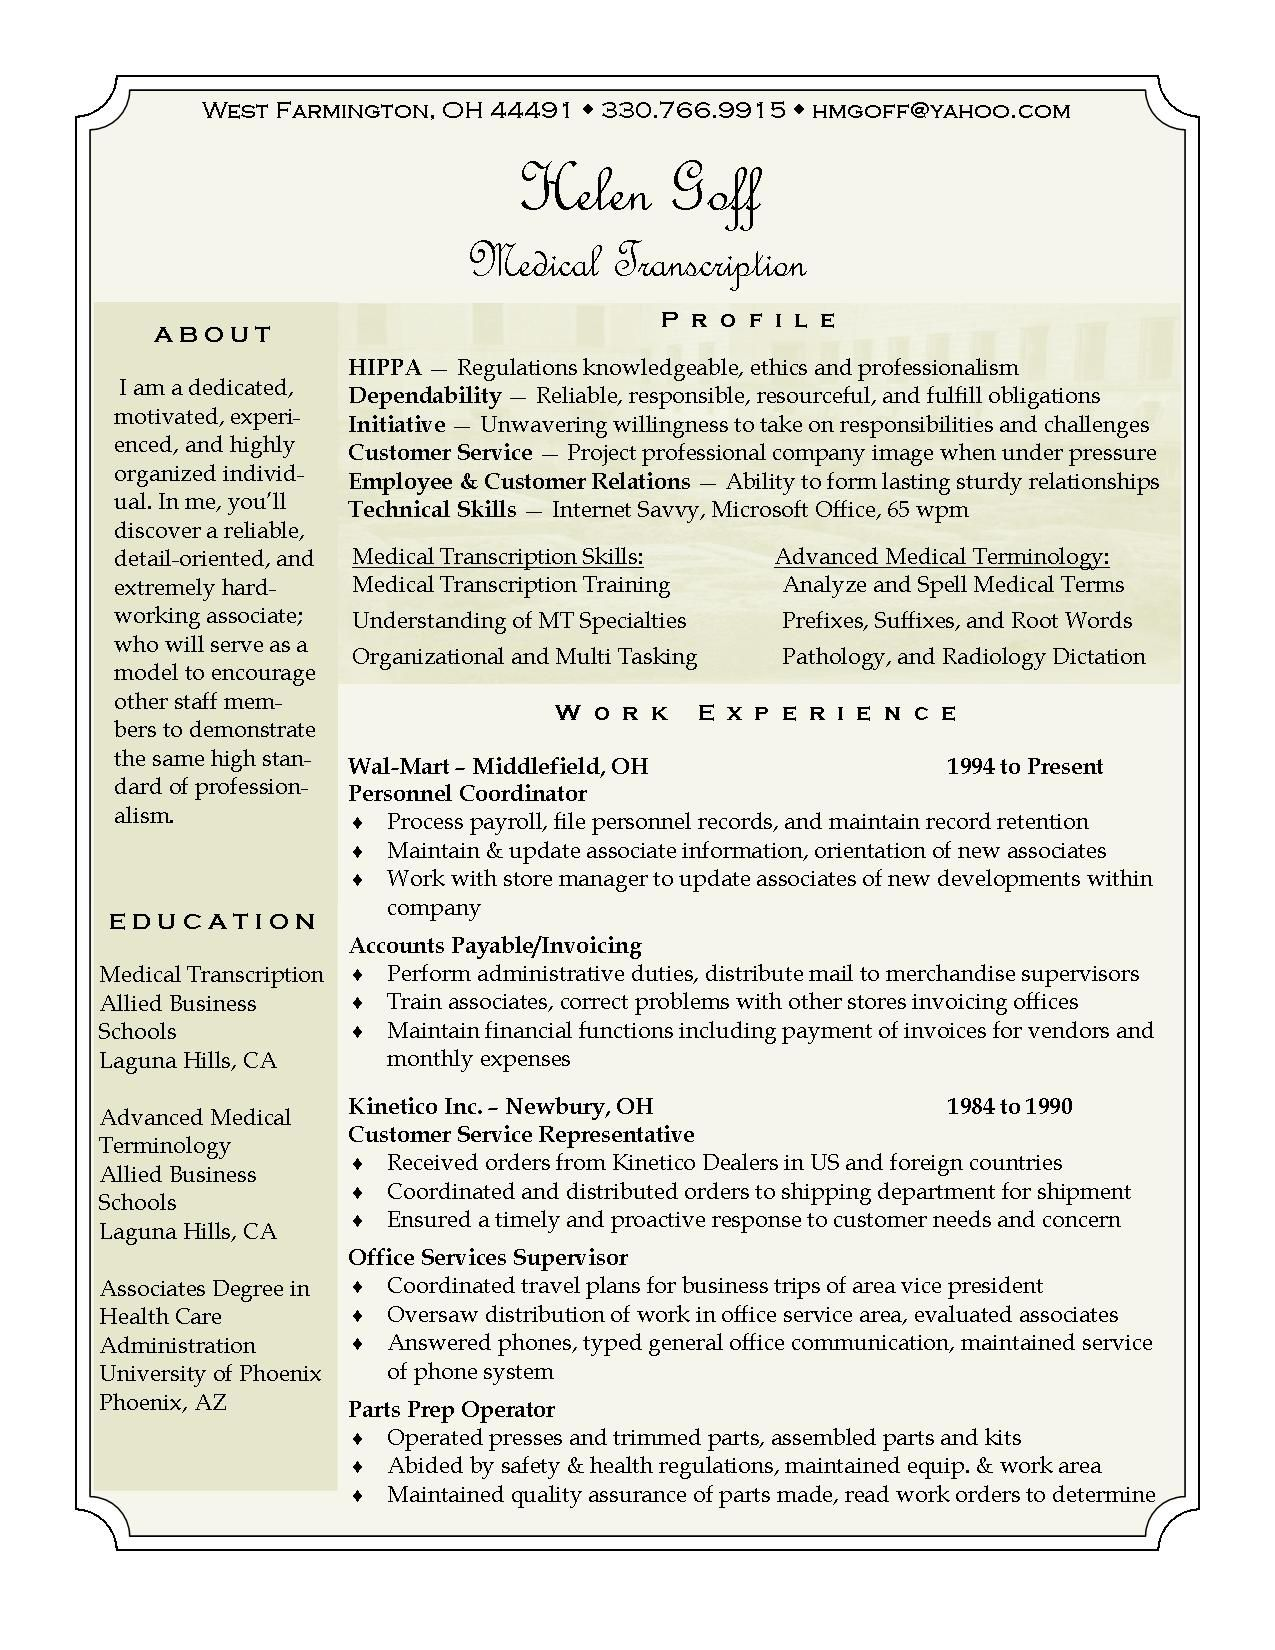 Helen Goff Resume   Medical Transcription #resume #career  Medical Transcription Resume